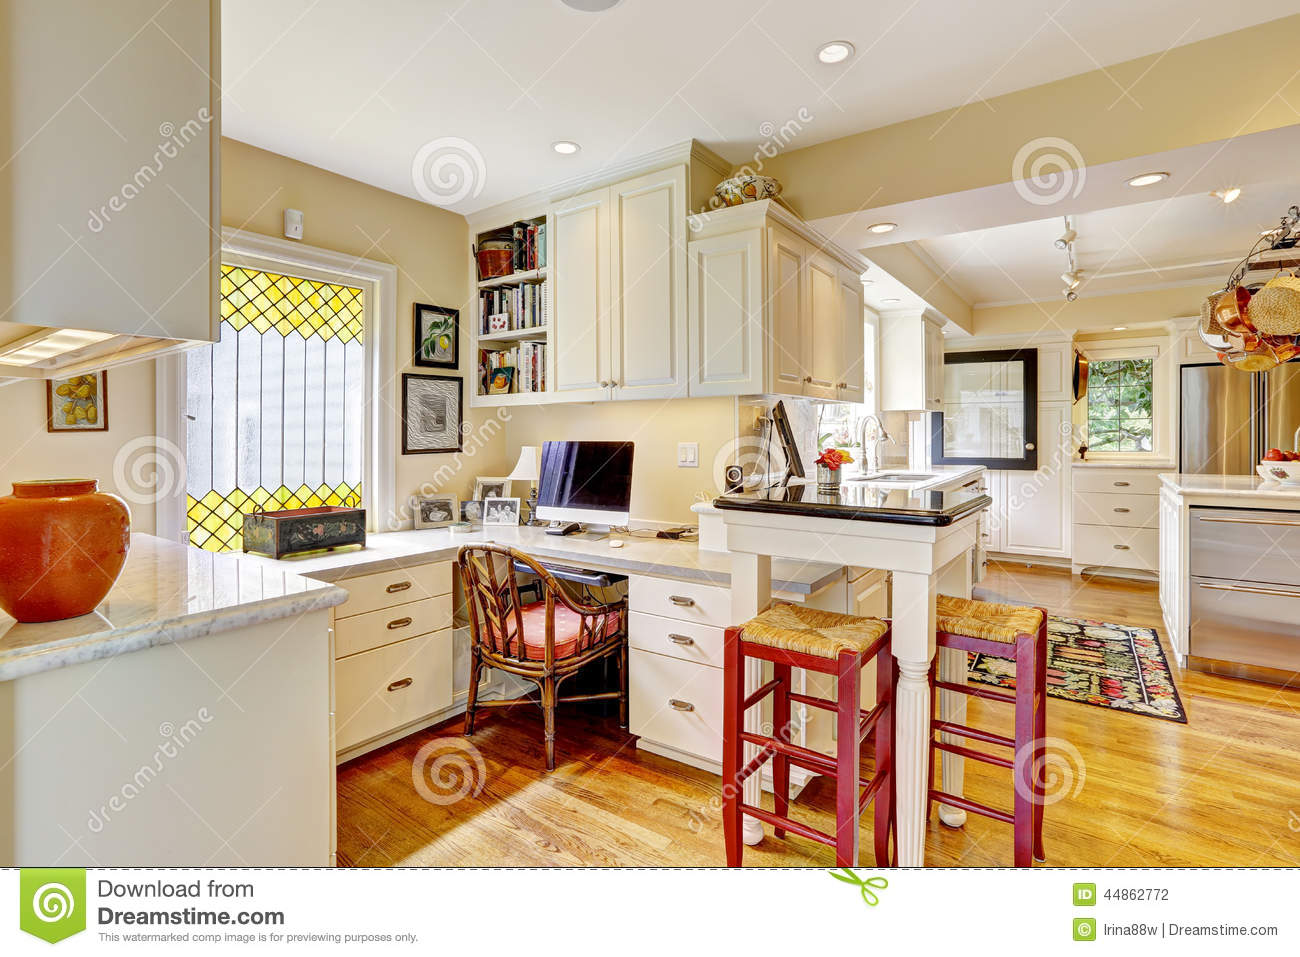 Kitchen Desk Area Office Area With White Cabinets And Desk Stock Photo Image 44862772